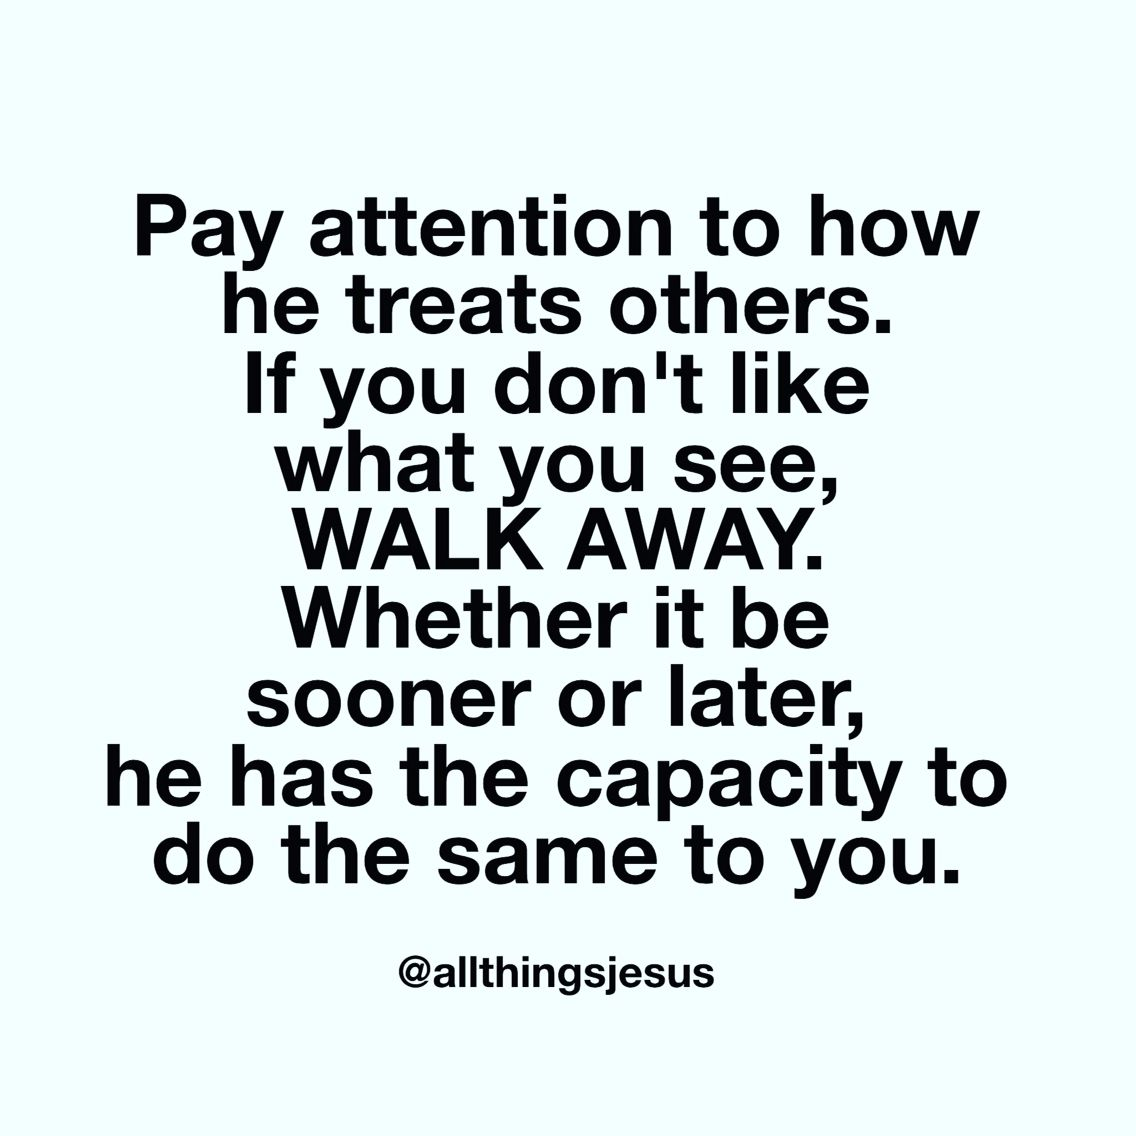 If they do it to others, they can do it to you too! Pay attention